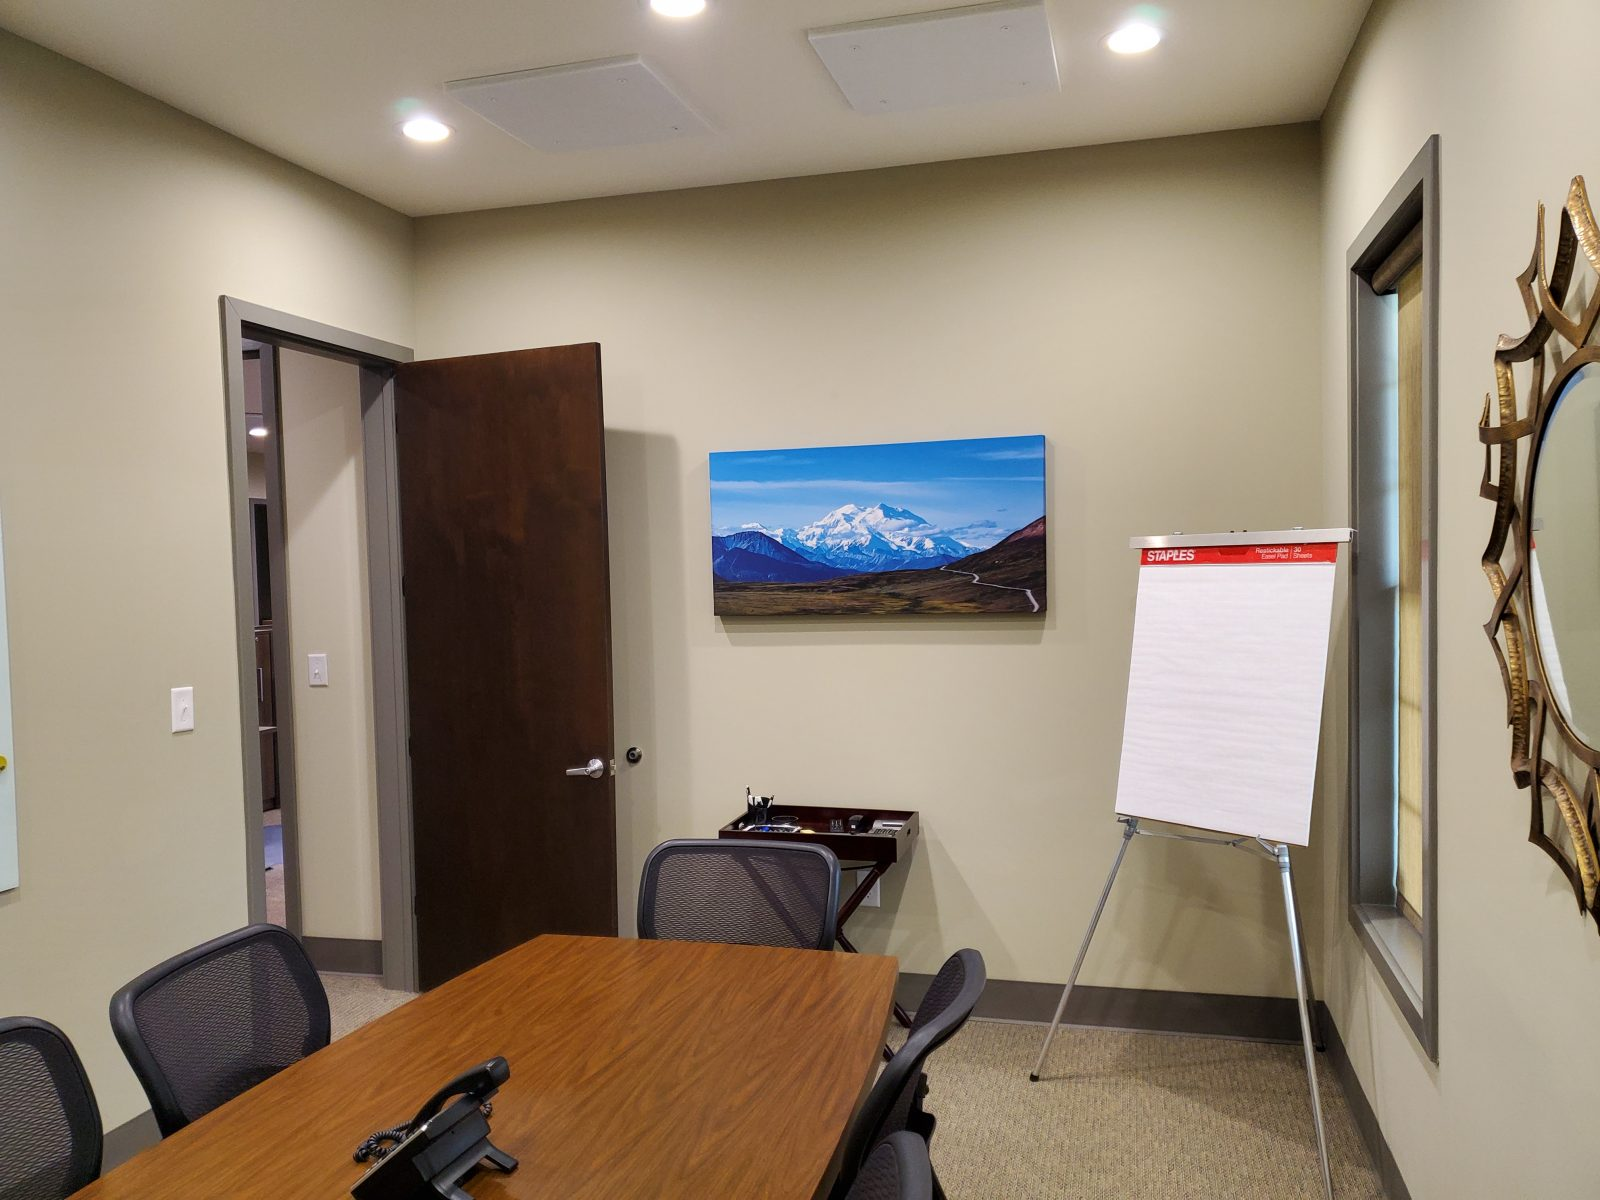 Acoustic Art Panels in office with landscape image of an epic mountain